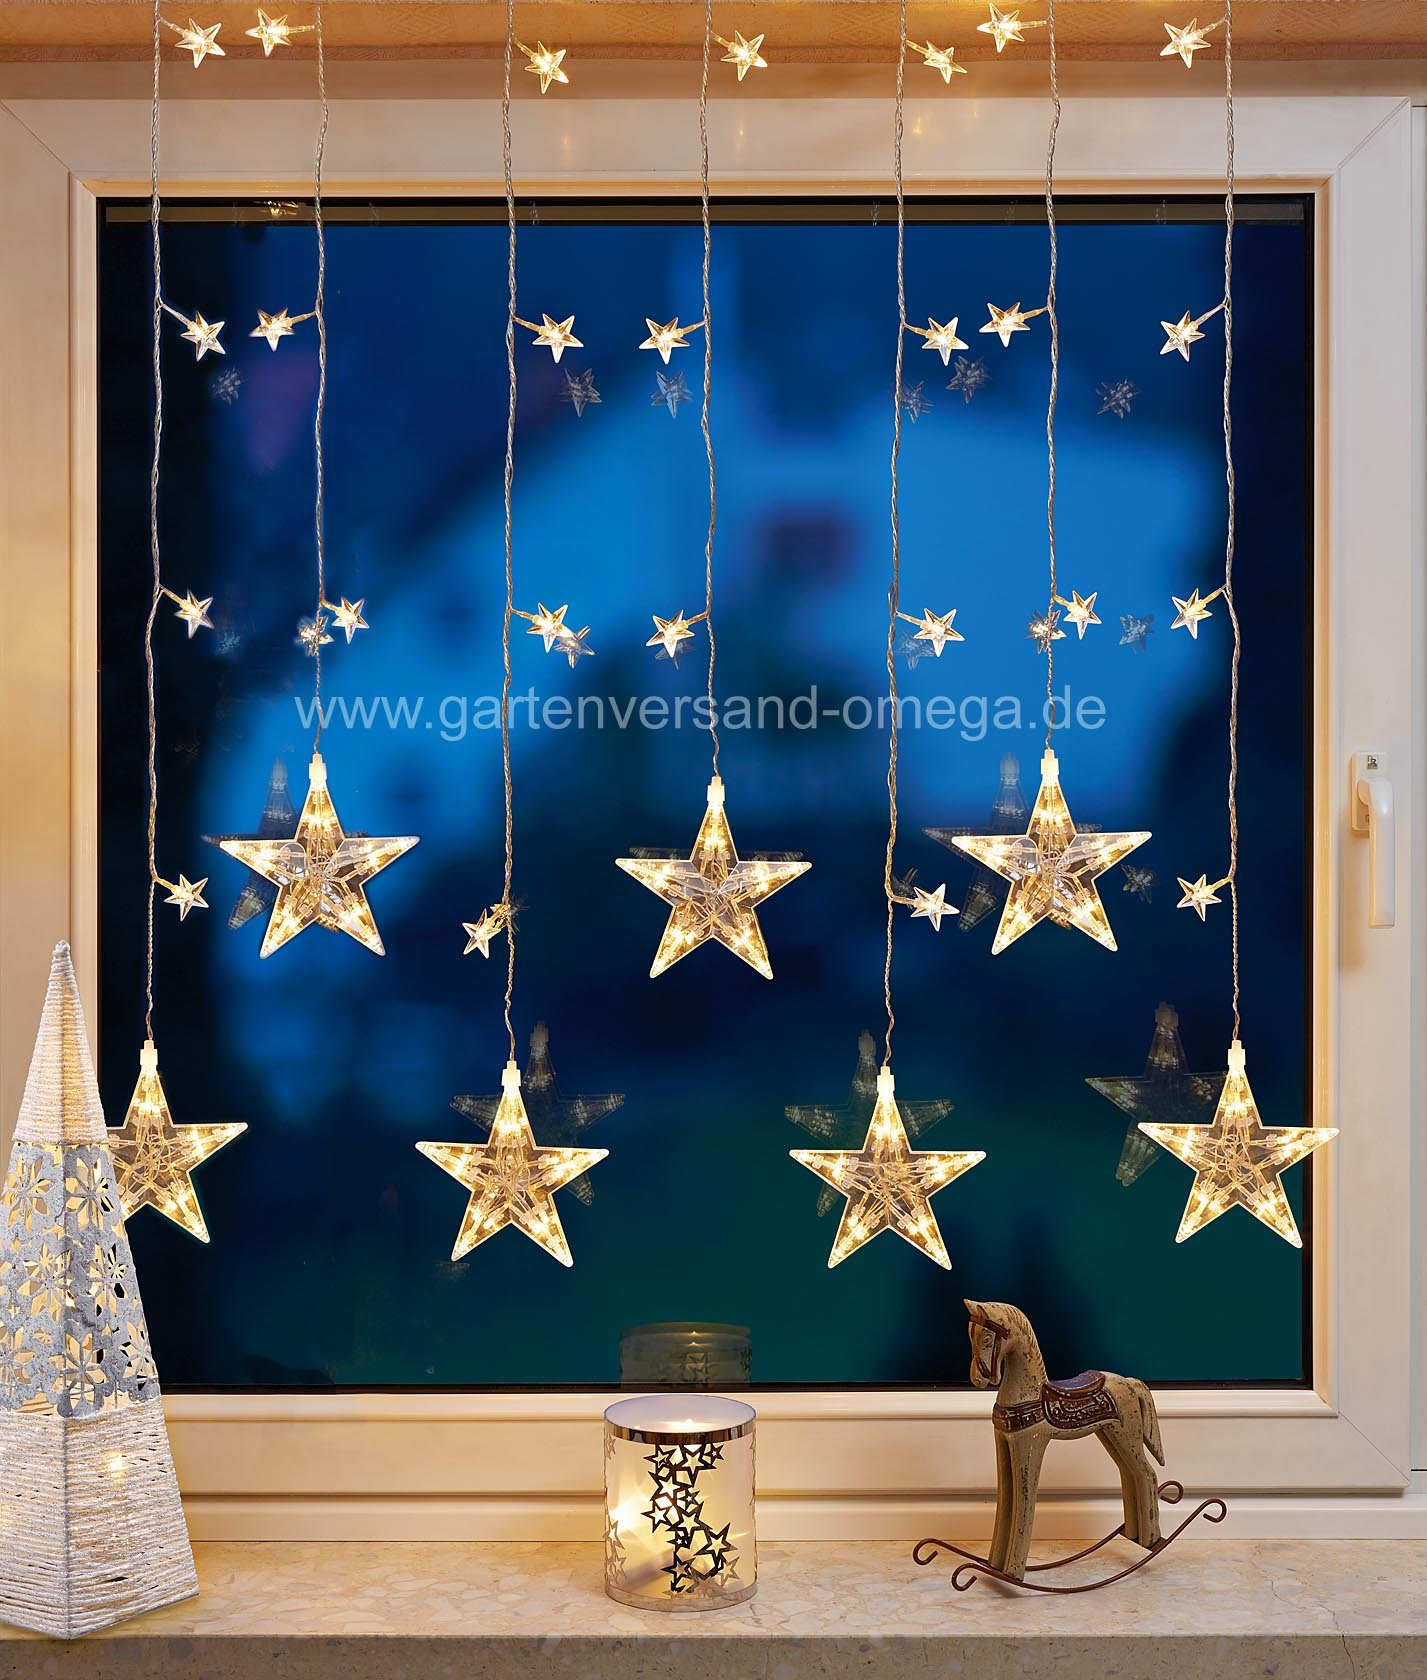 led weihnachtsbeleuchtung f r fenster my blog. Black Bedroom Furniture Sets. Home Design Ideas